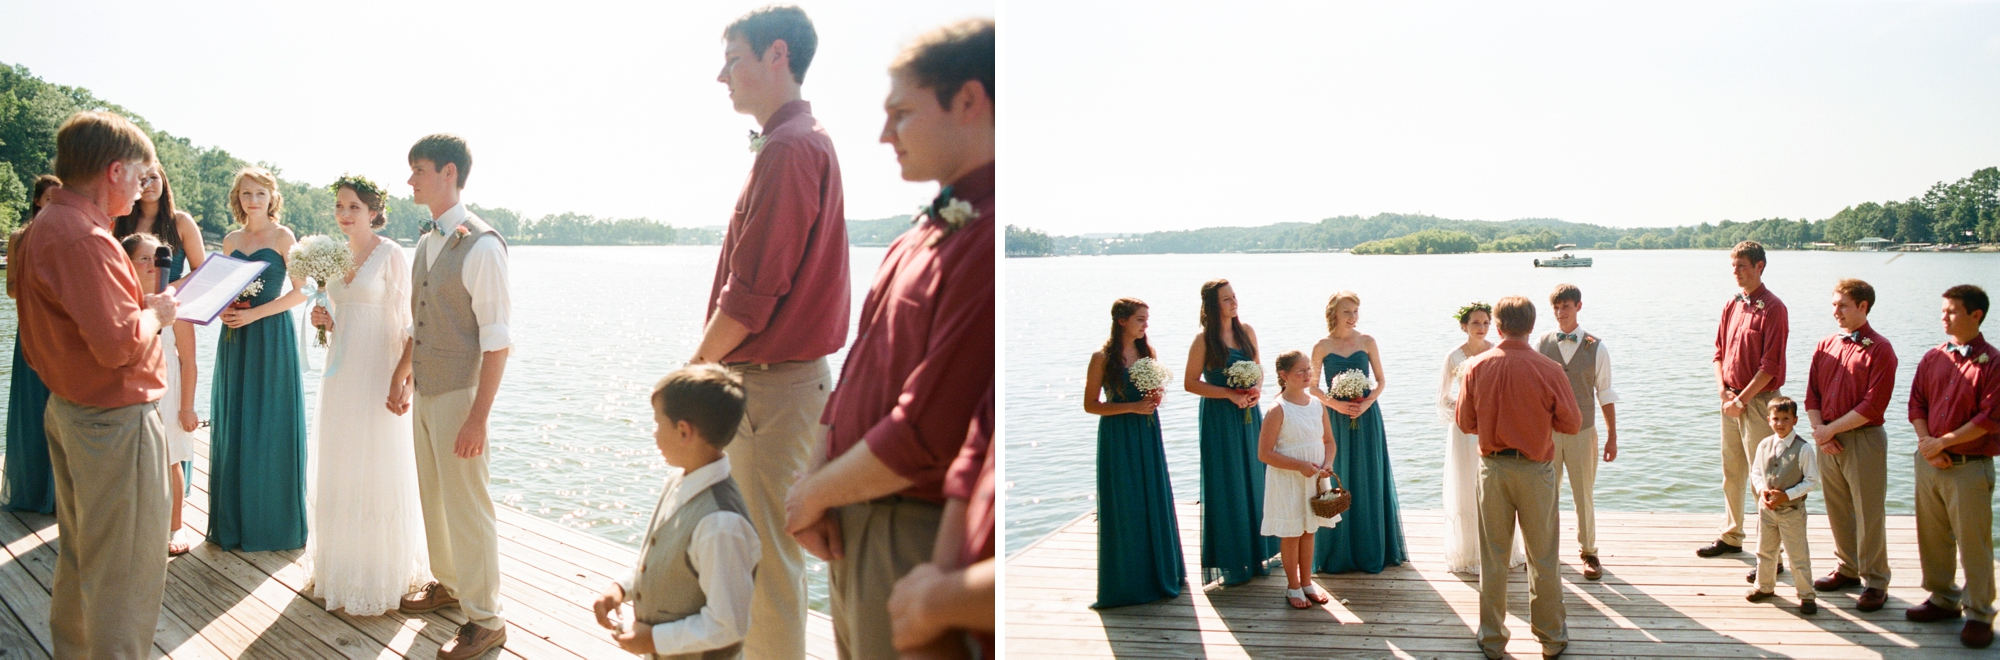 smith lake wedding_0059